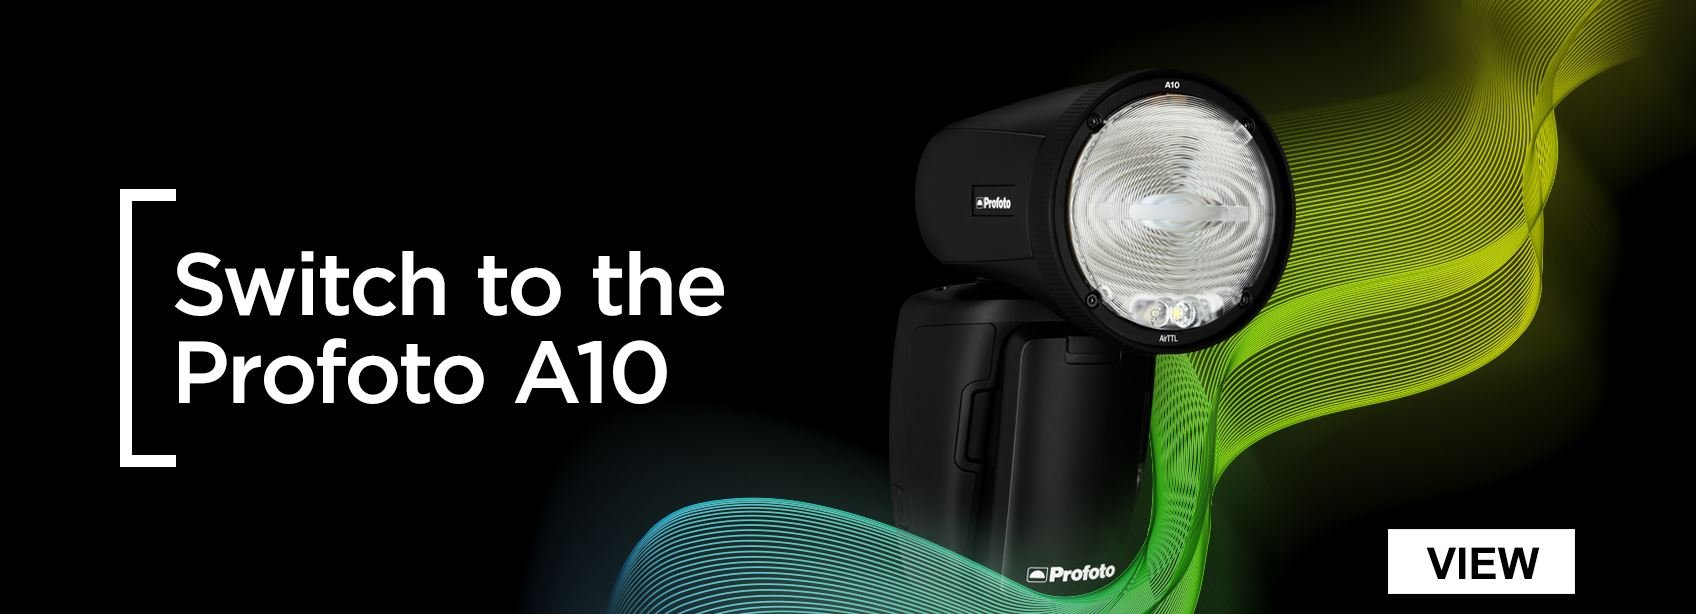 Profoto A10 | Time to switch for life